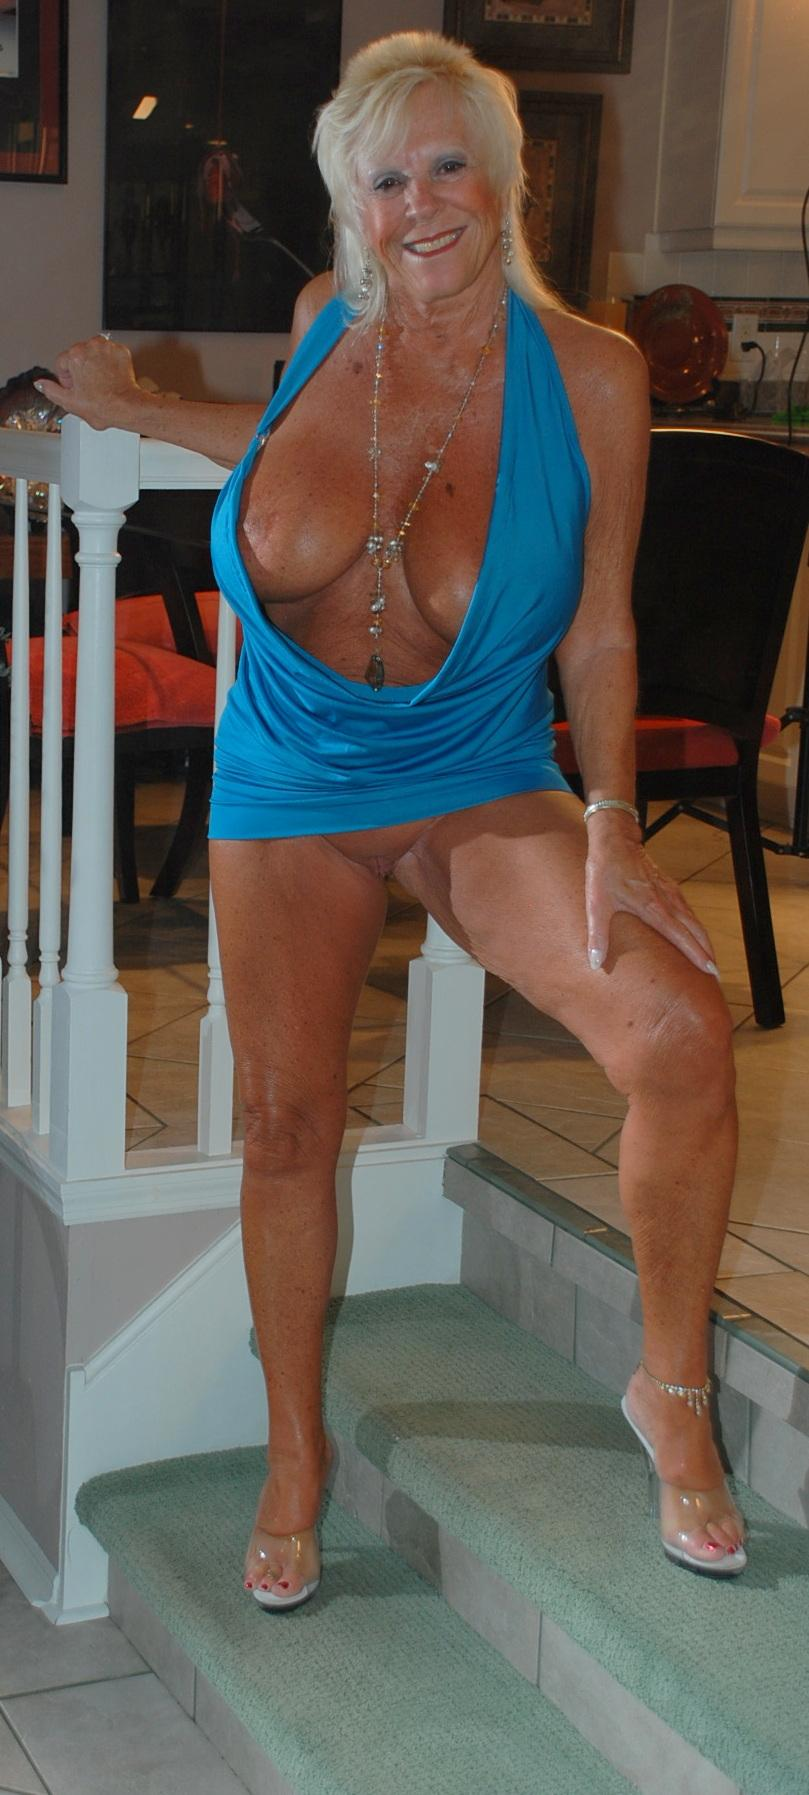 jacqueline lord naked pictures